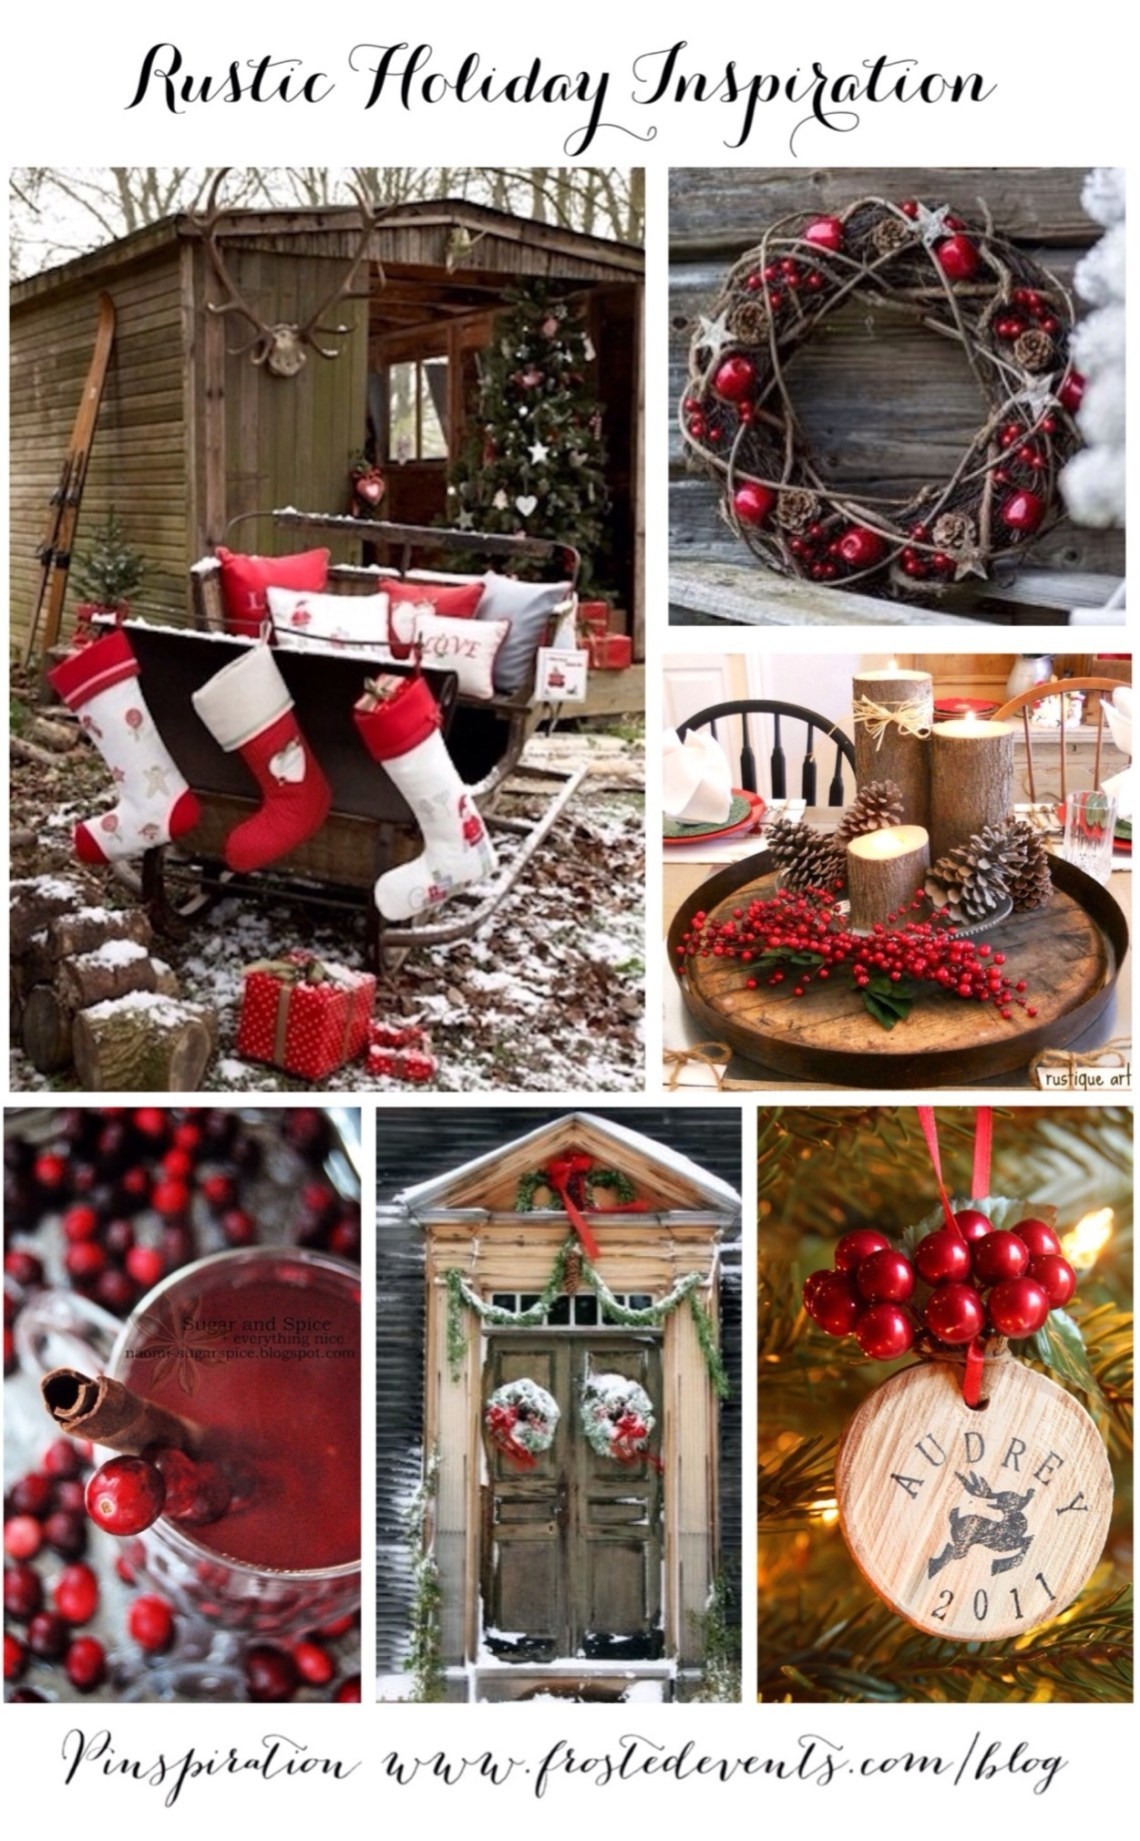 Rustic Christmas decorations Rustic Holiday Inspiration www.frostedevents.com Christmas Ideas